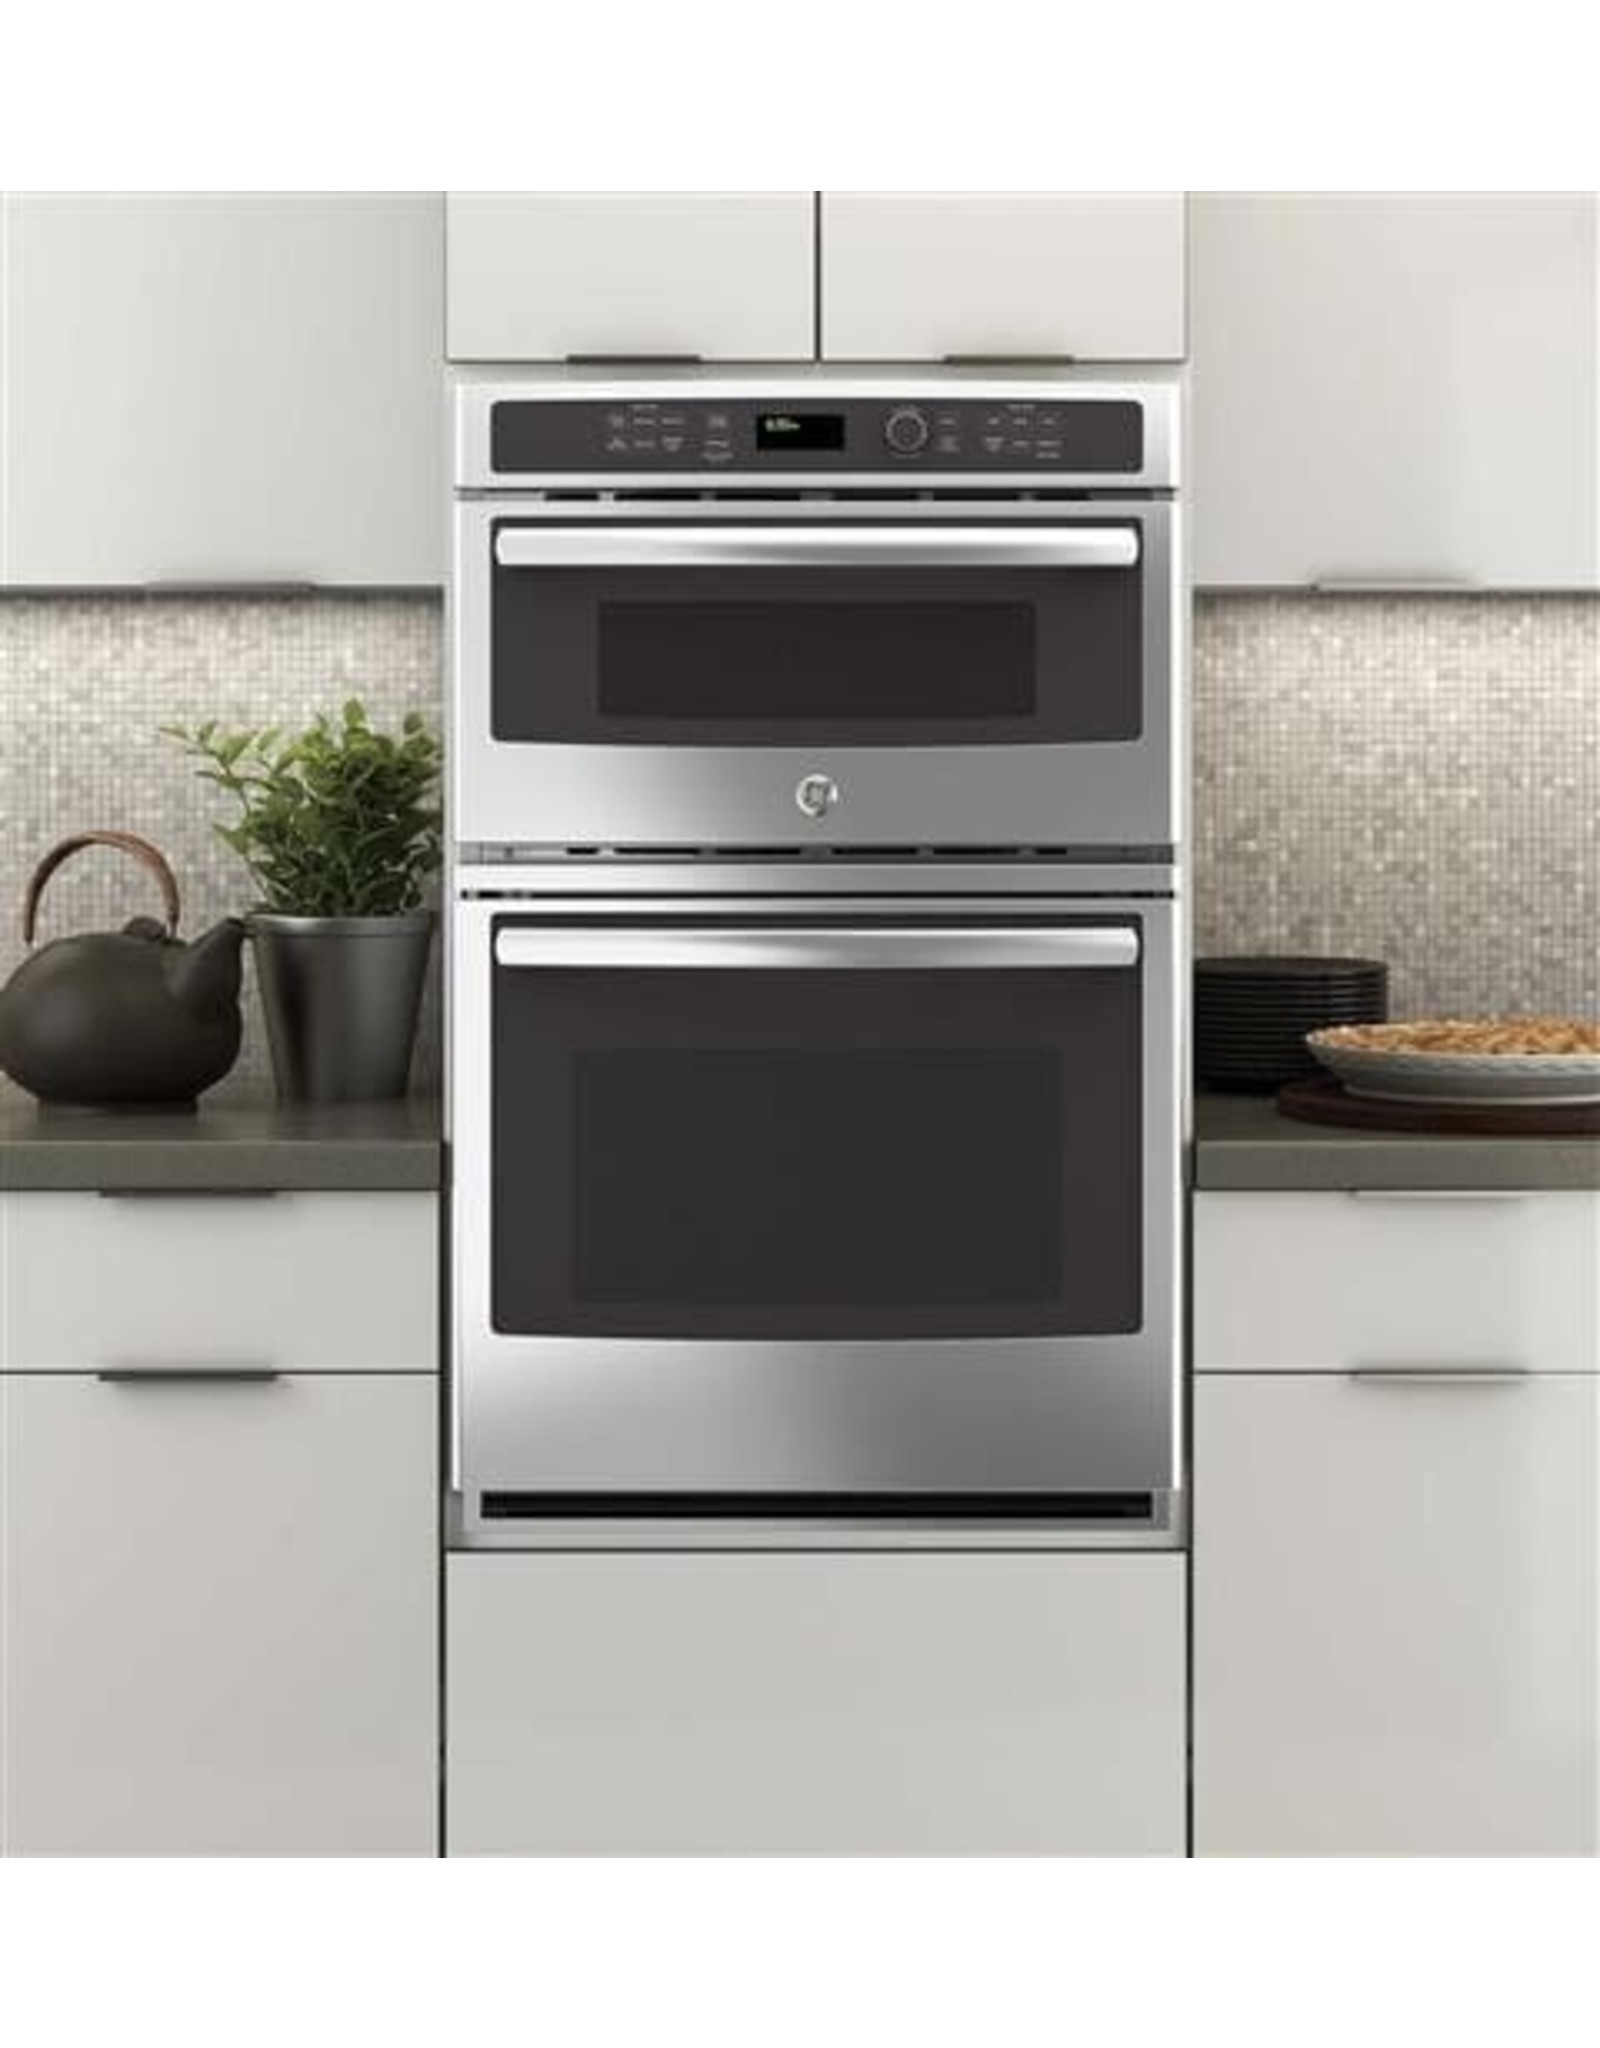 GE PROFILE JK3800SHSS 27 in. Double Electric Wall Oven with Built-In Microwave in Stainless Steel